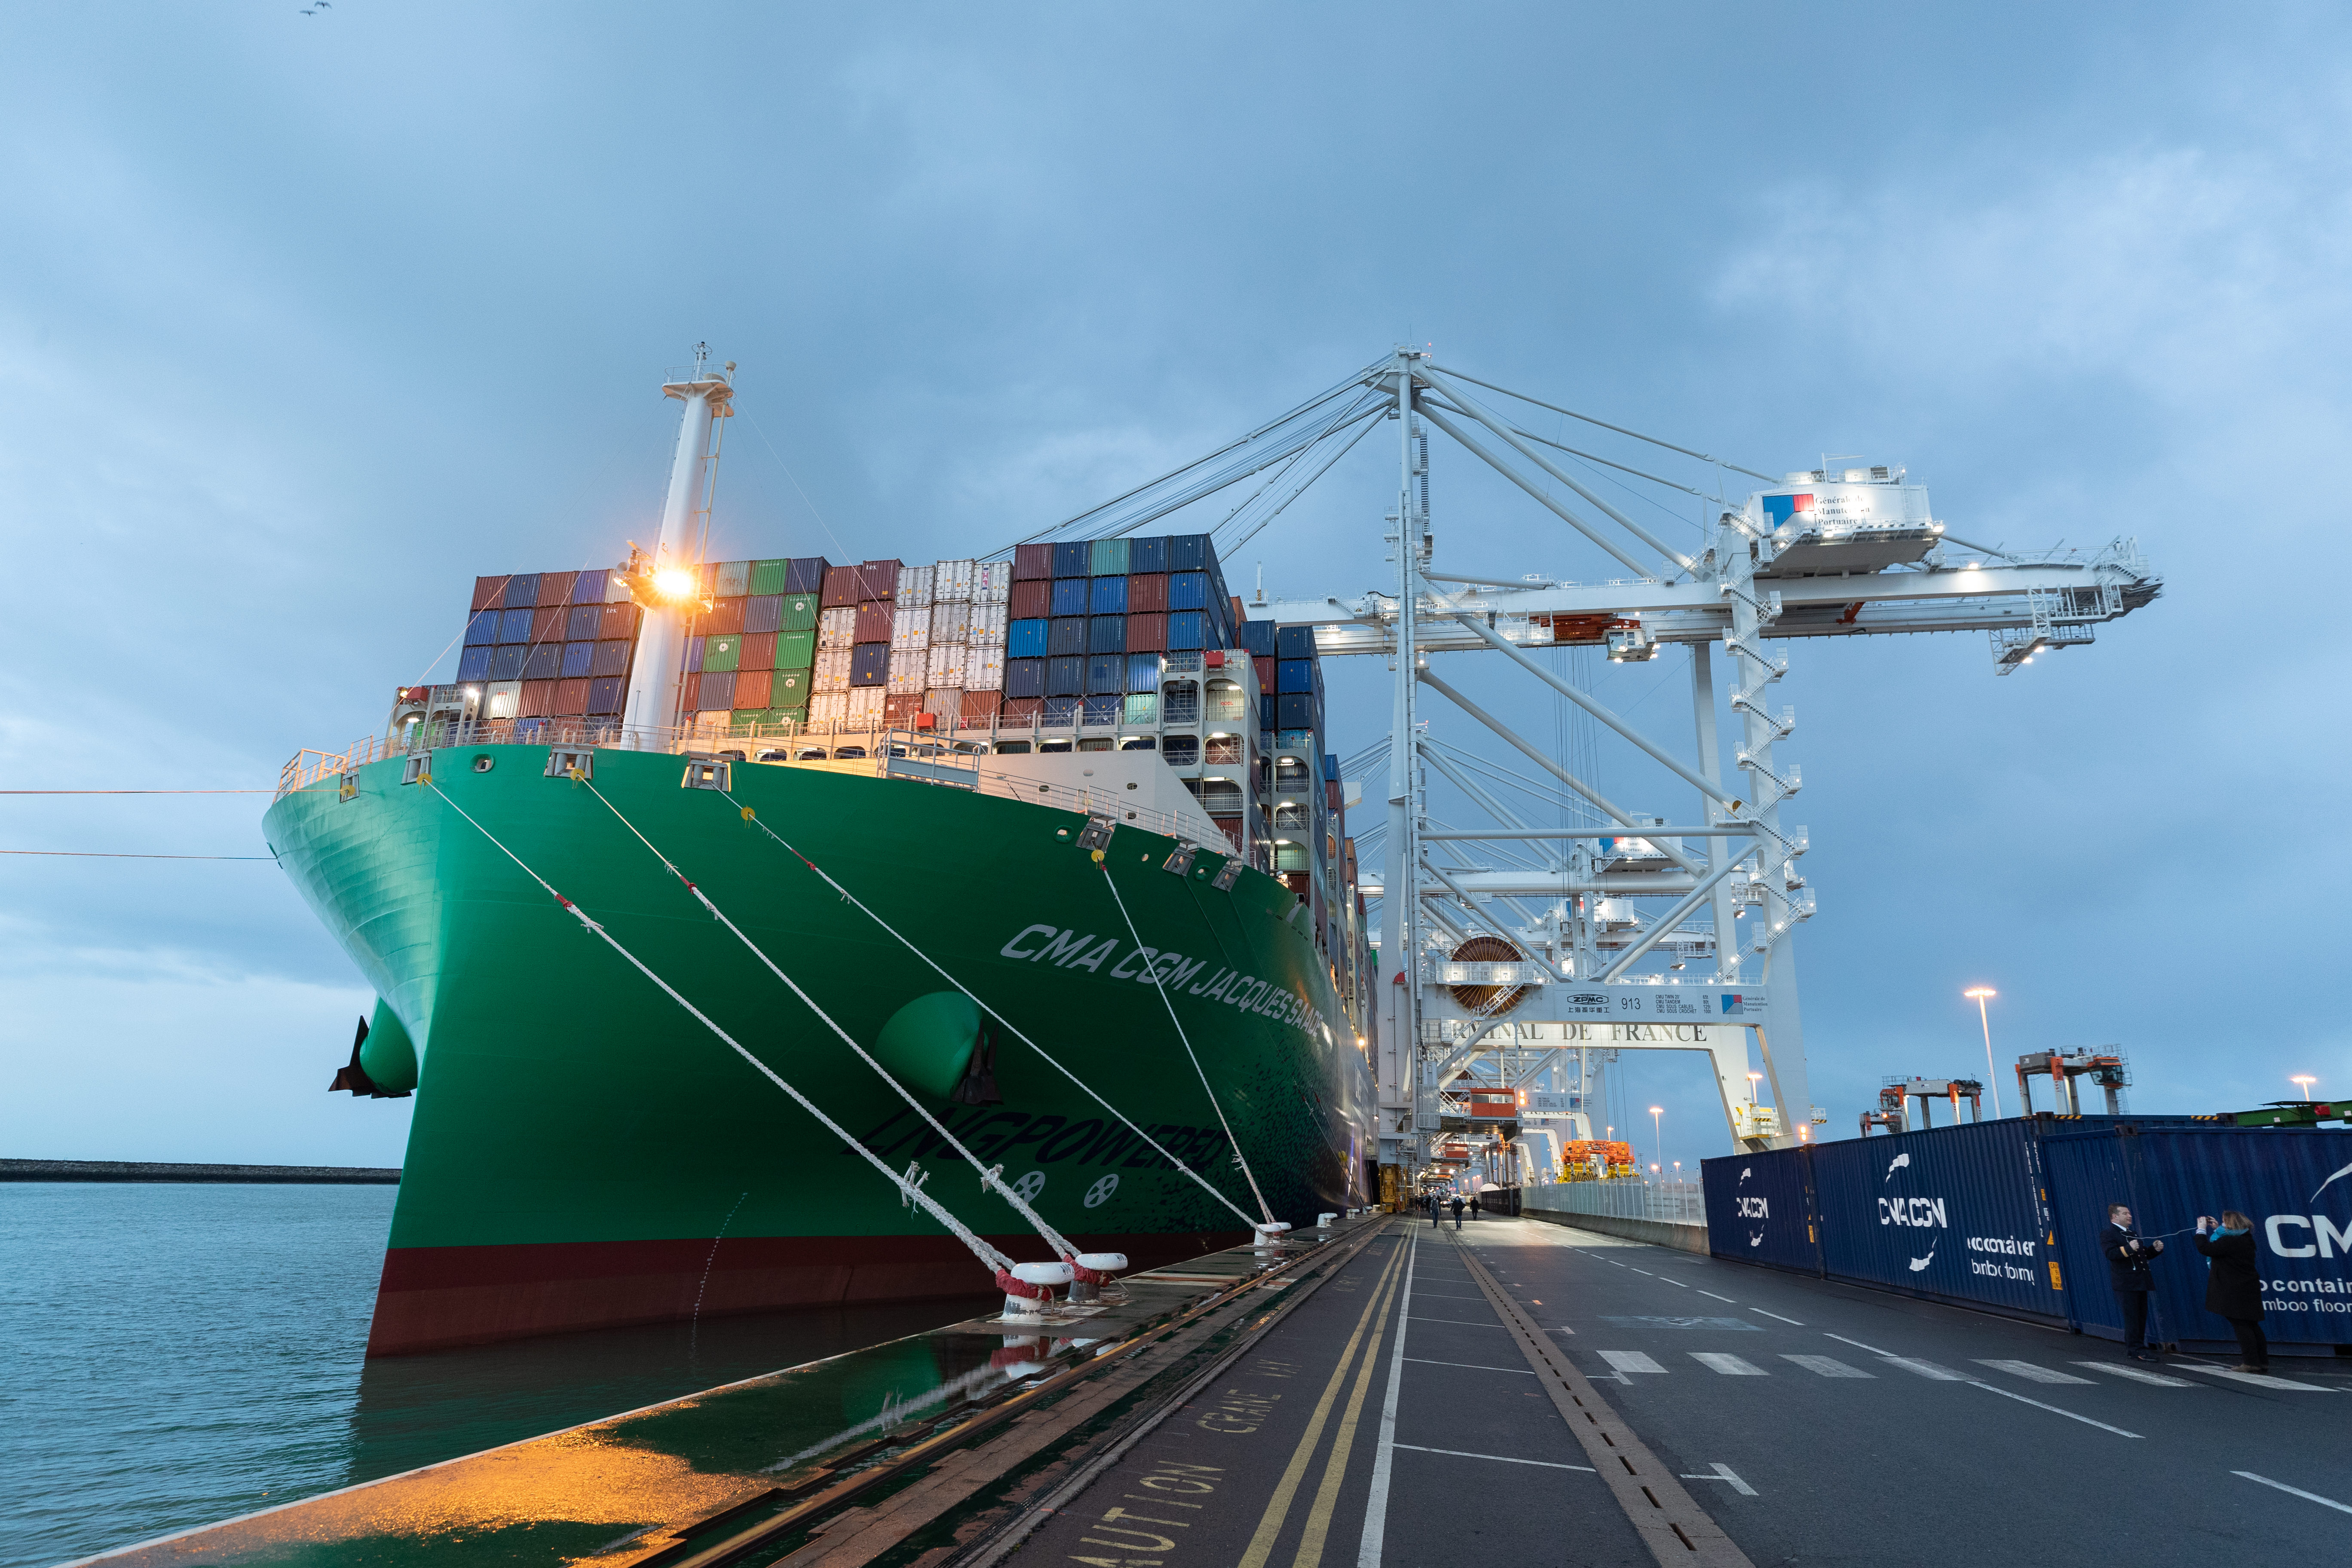 CMA CGM JACQUES SAADE HAVRE NEWS ESCALE